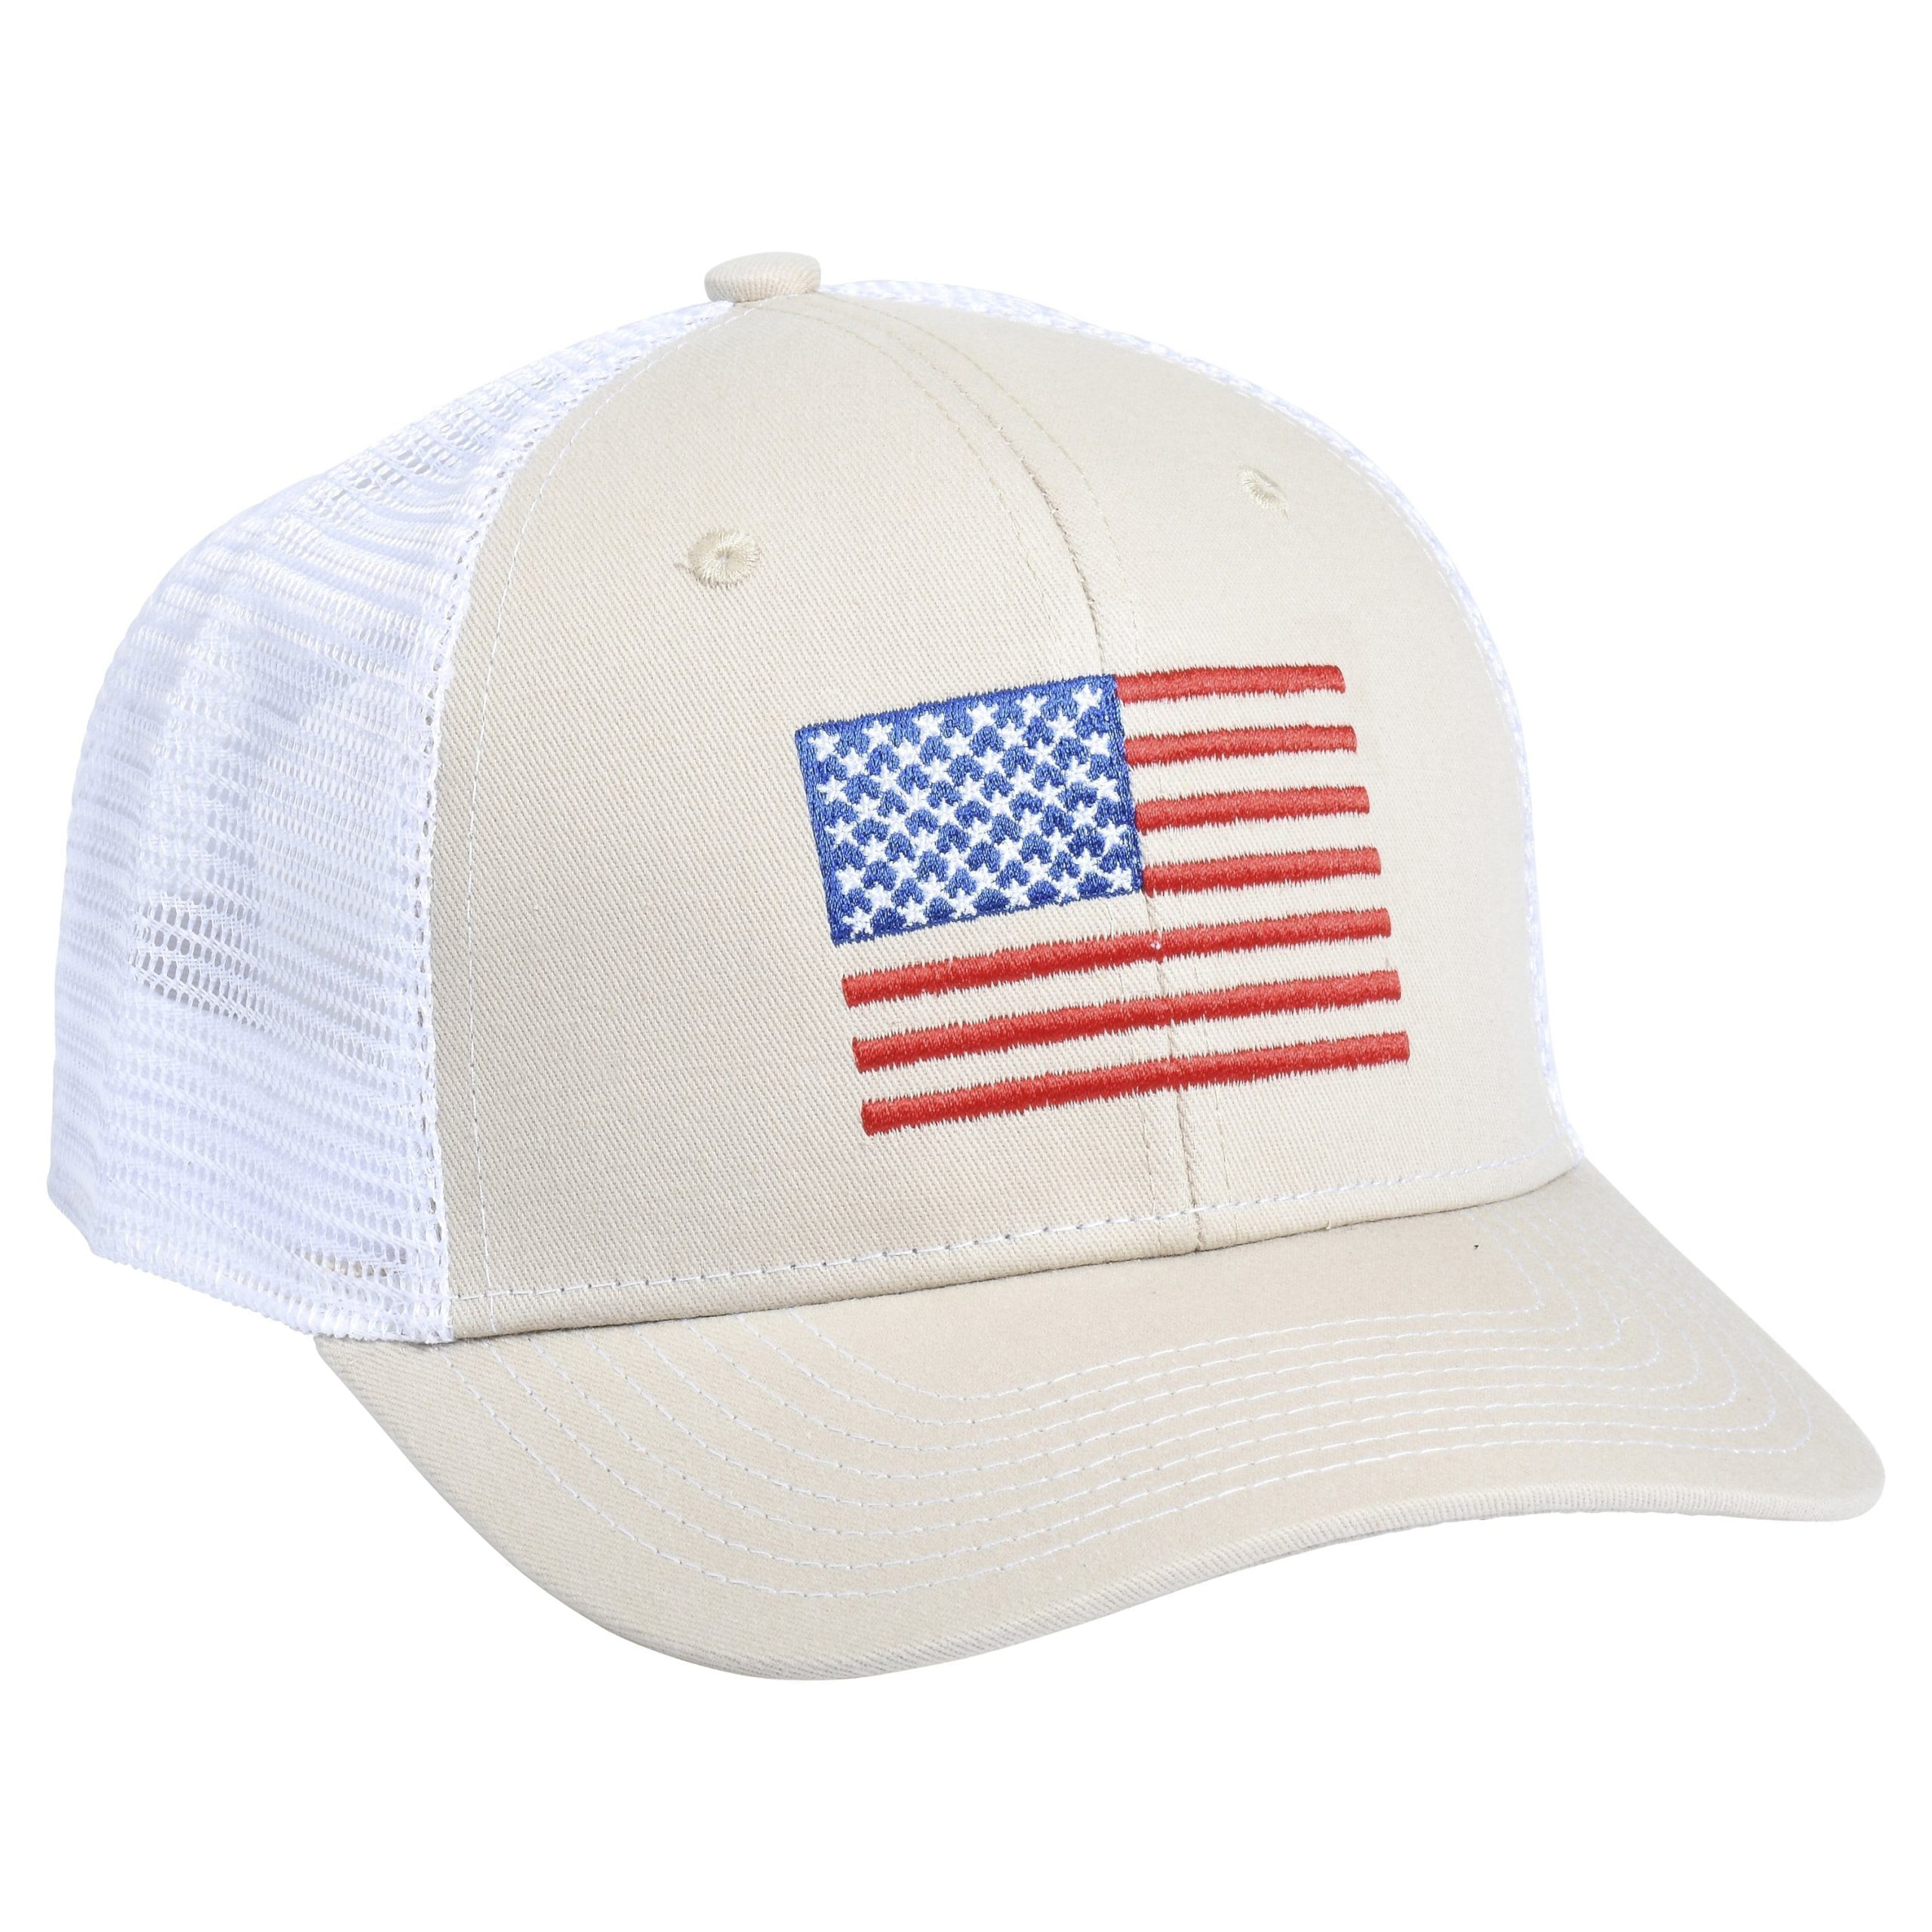 American Flag Embroidery Tan/White